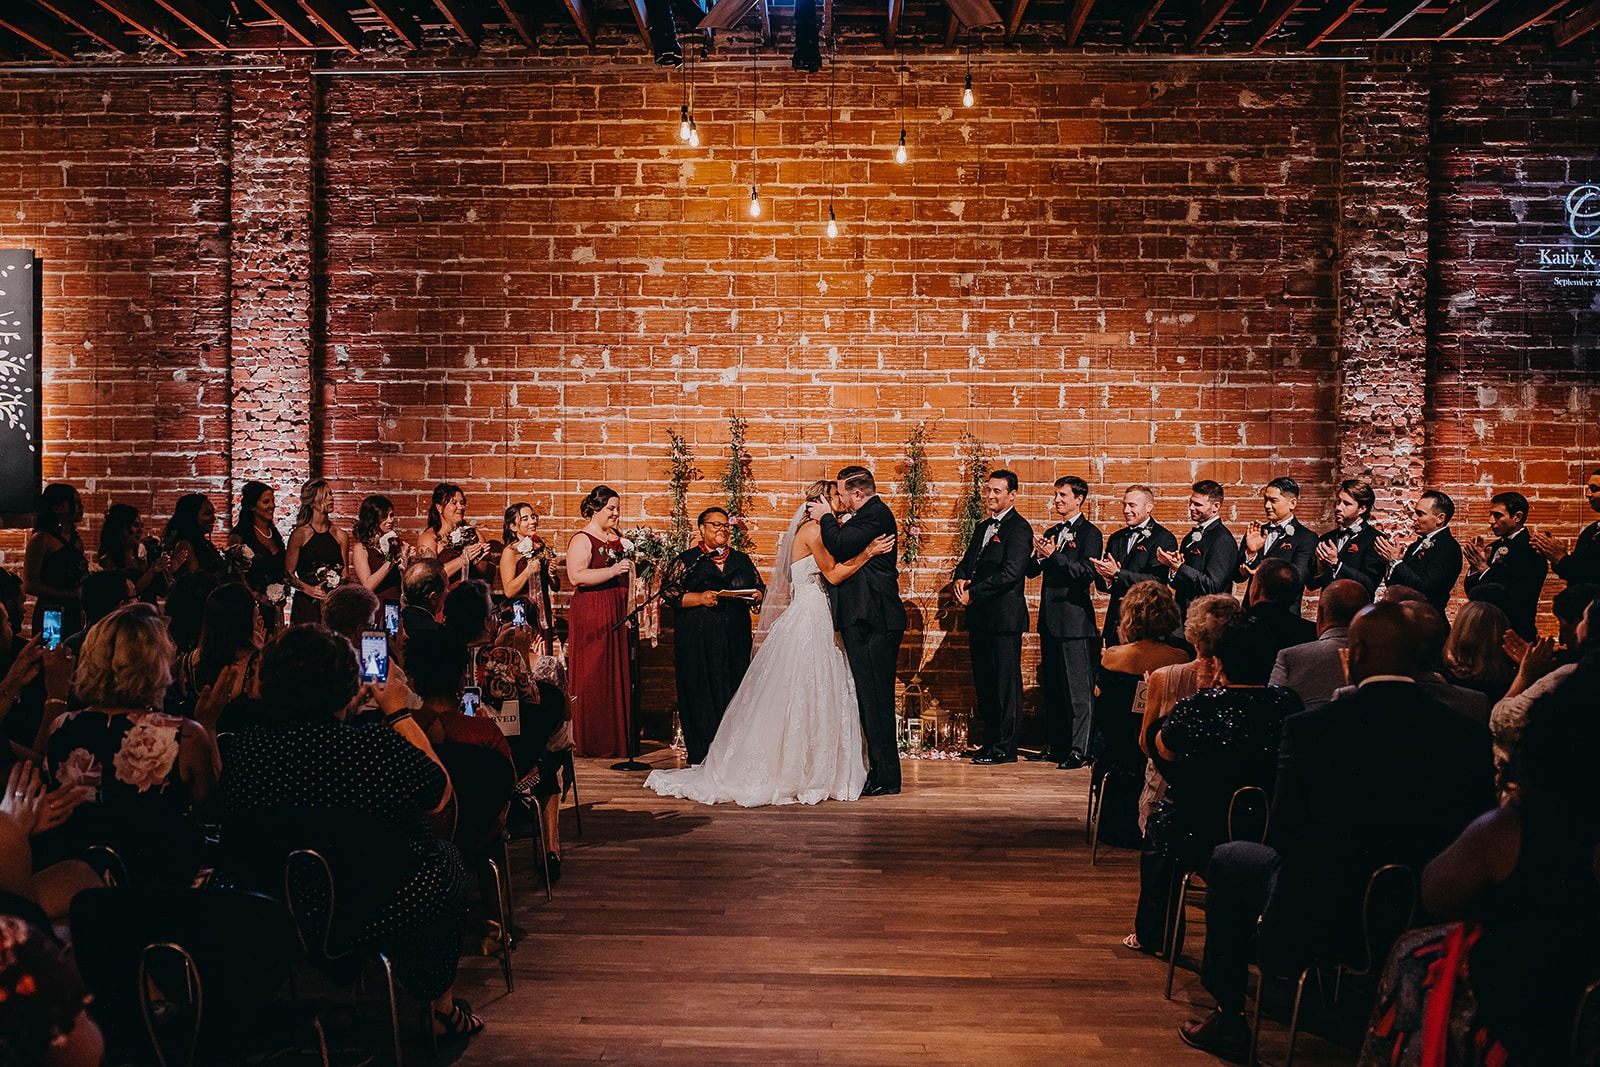 Romantic Burgundy industrial chic downtown St. Pete Florida wedding at historic venue NOVA 535